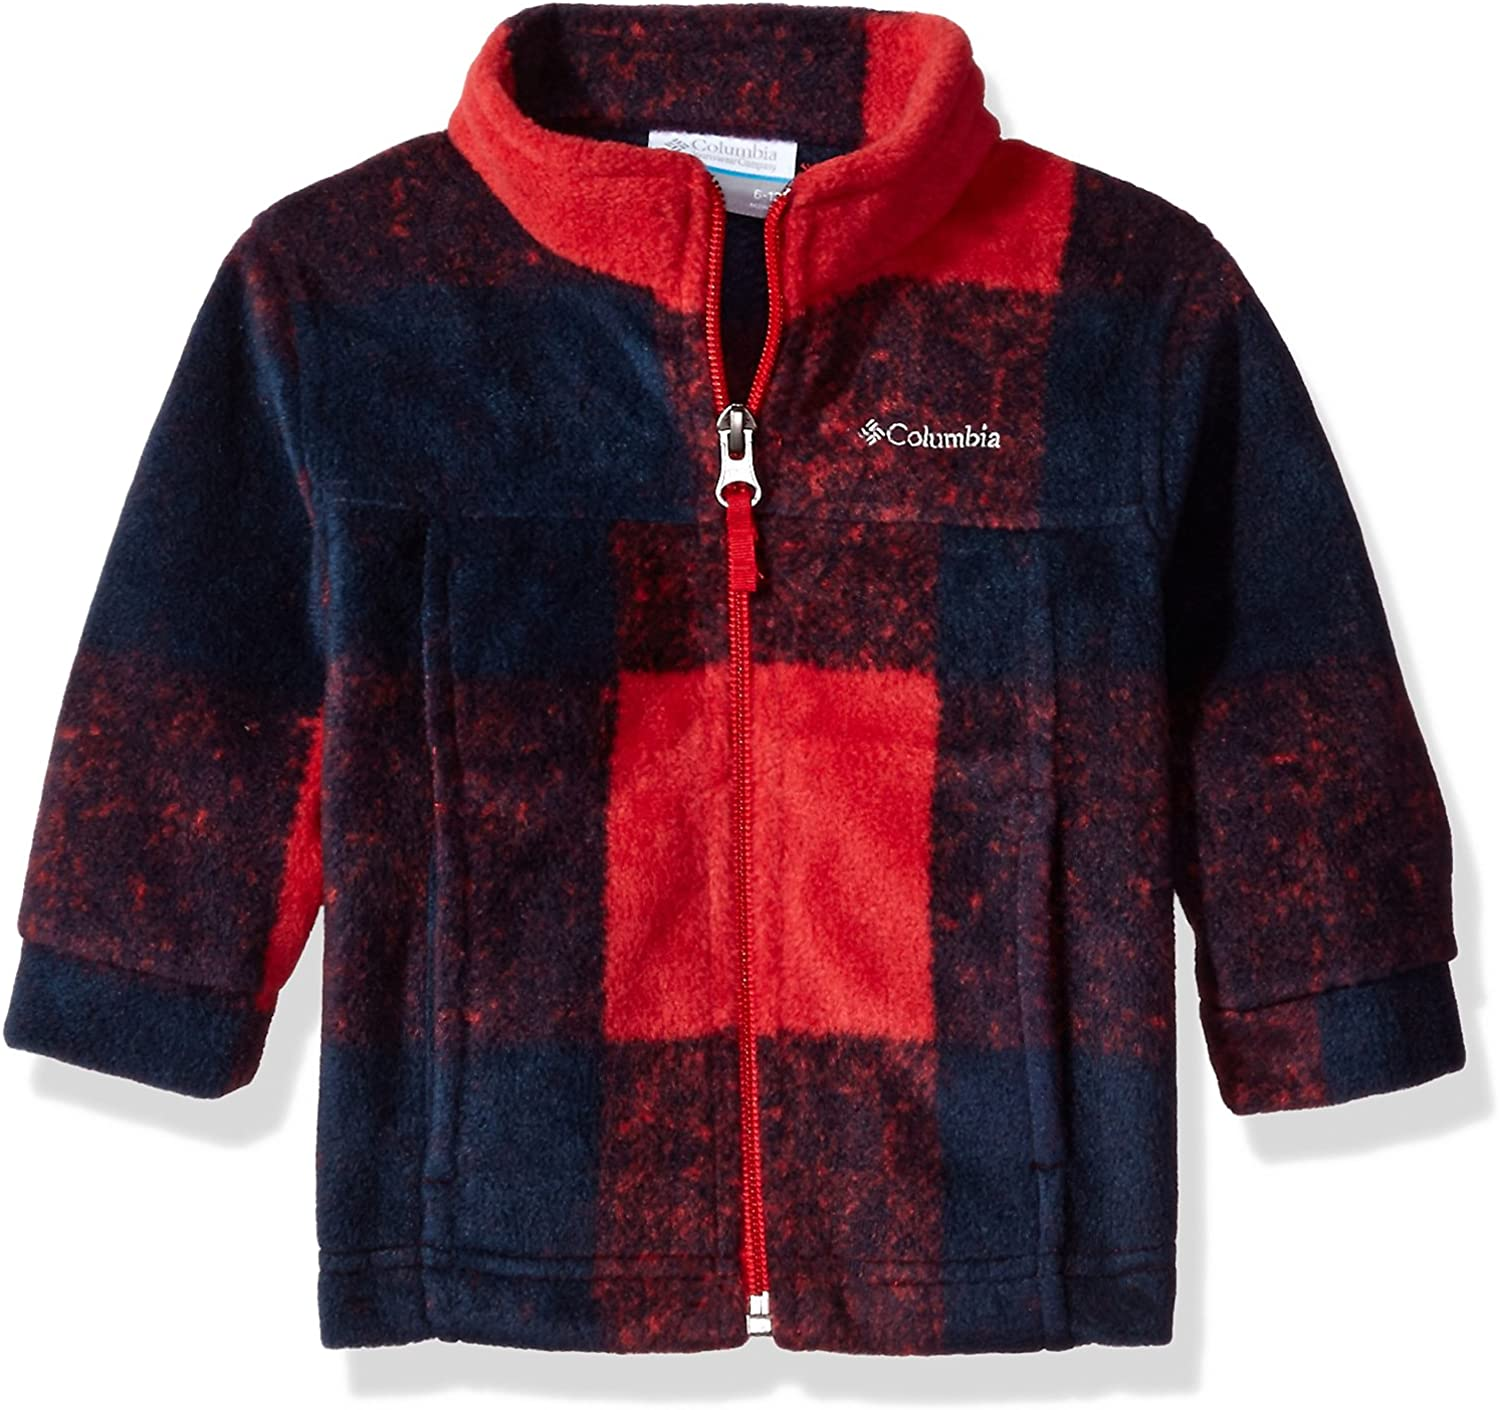 Columbia OUTERWEAR ベビー・ボーイズ